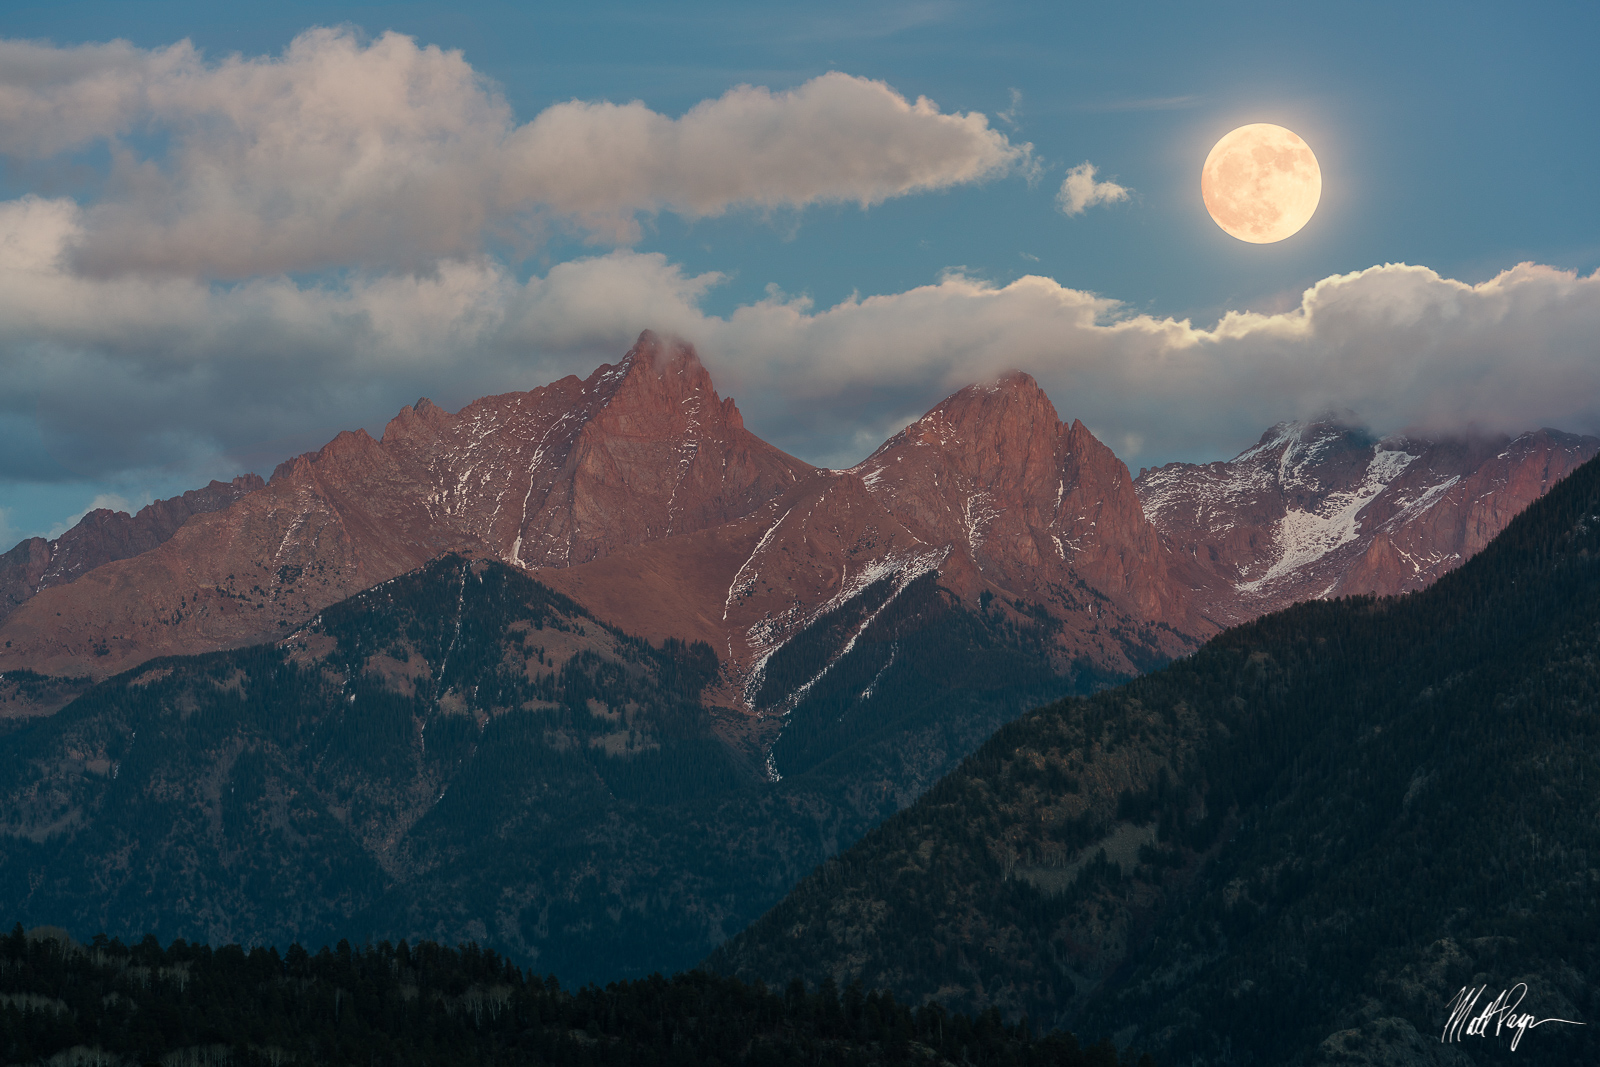 Colorado, Durango, Full Moon, Landscape, Moon, Moonrise, Mountains, Needle Mountains, Night, Pigeon Peak, Purgatory Resort, San Juan Mountains, Sony A7R2, Sony FE 70-300, Southwest Colorado, Supermoon, photo